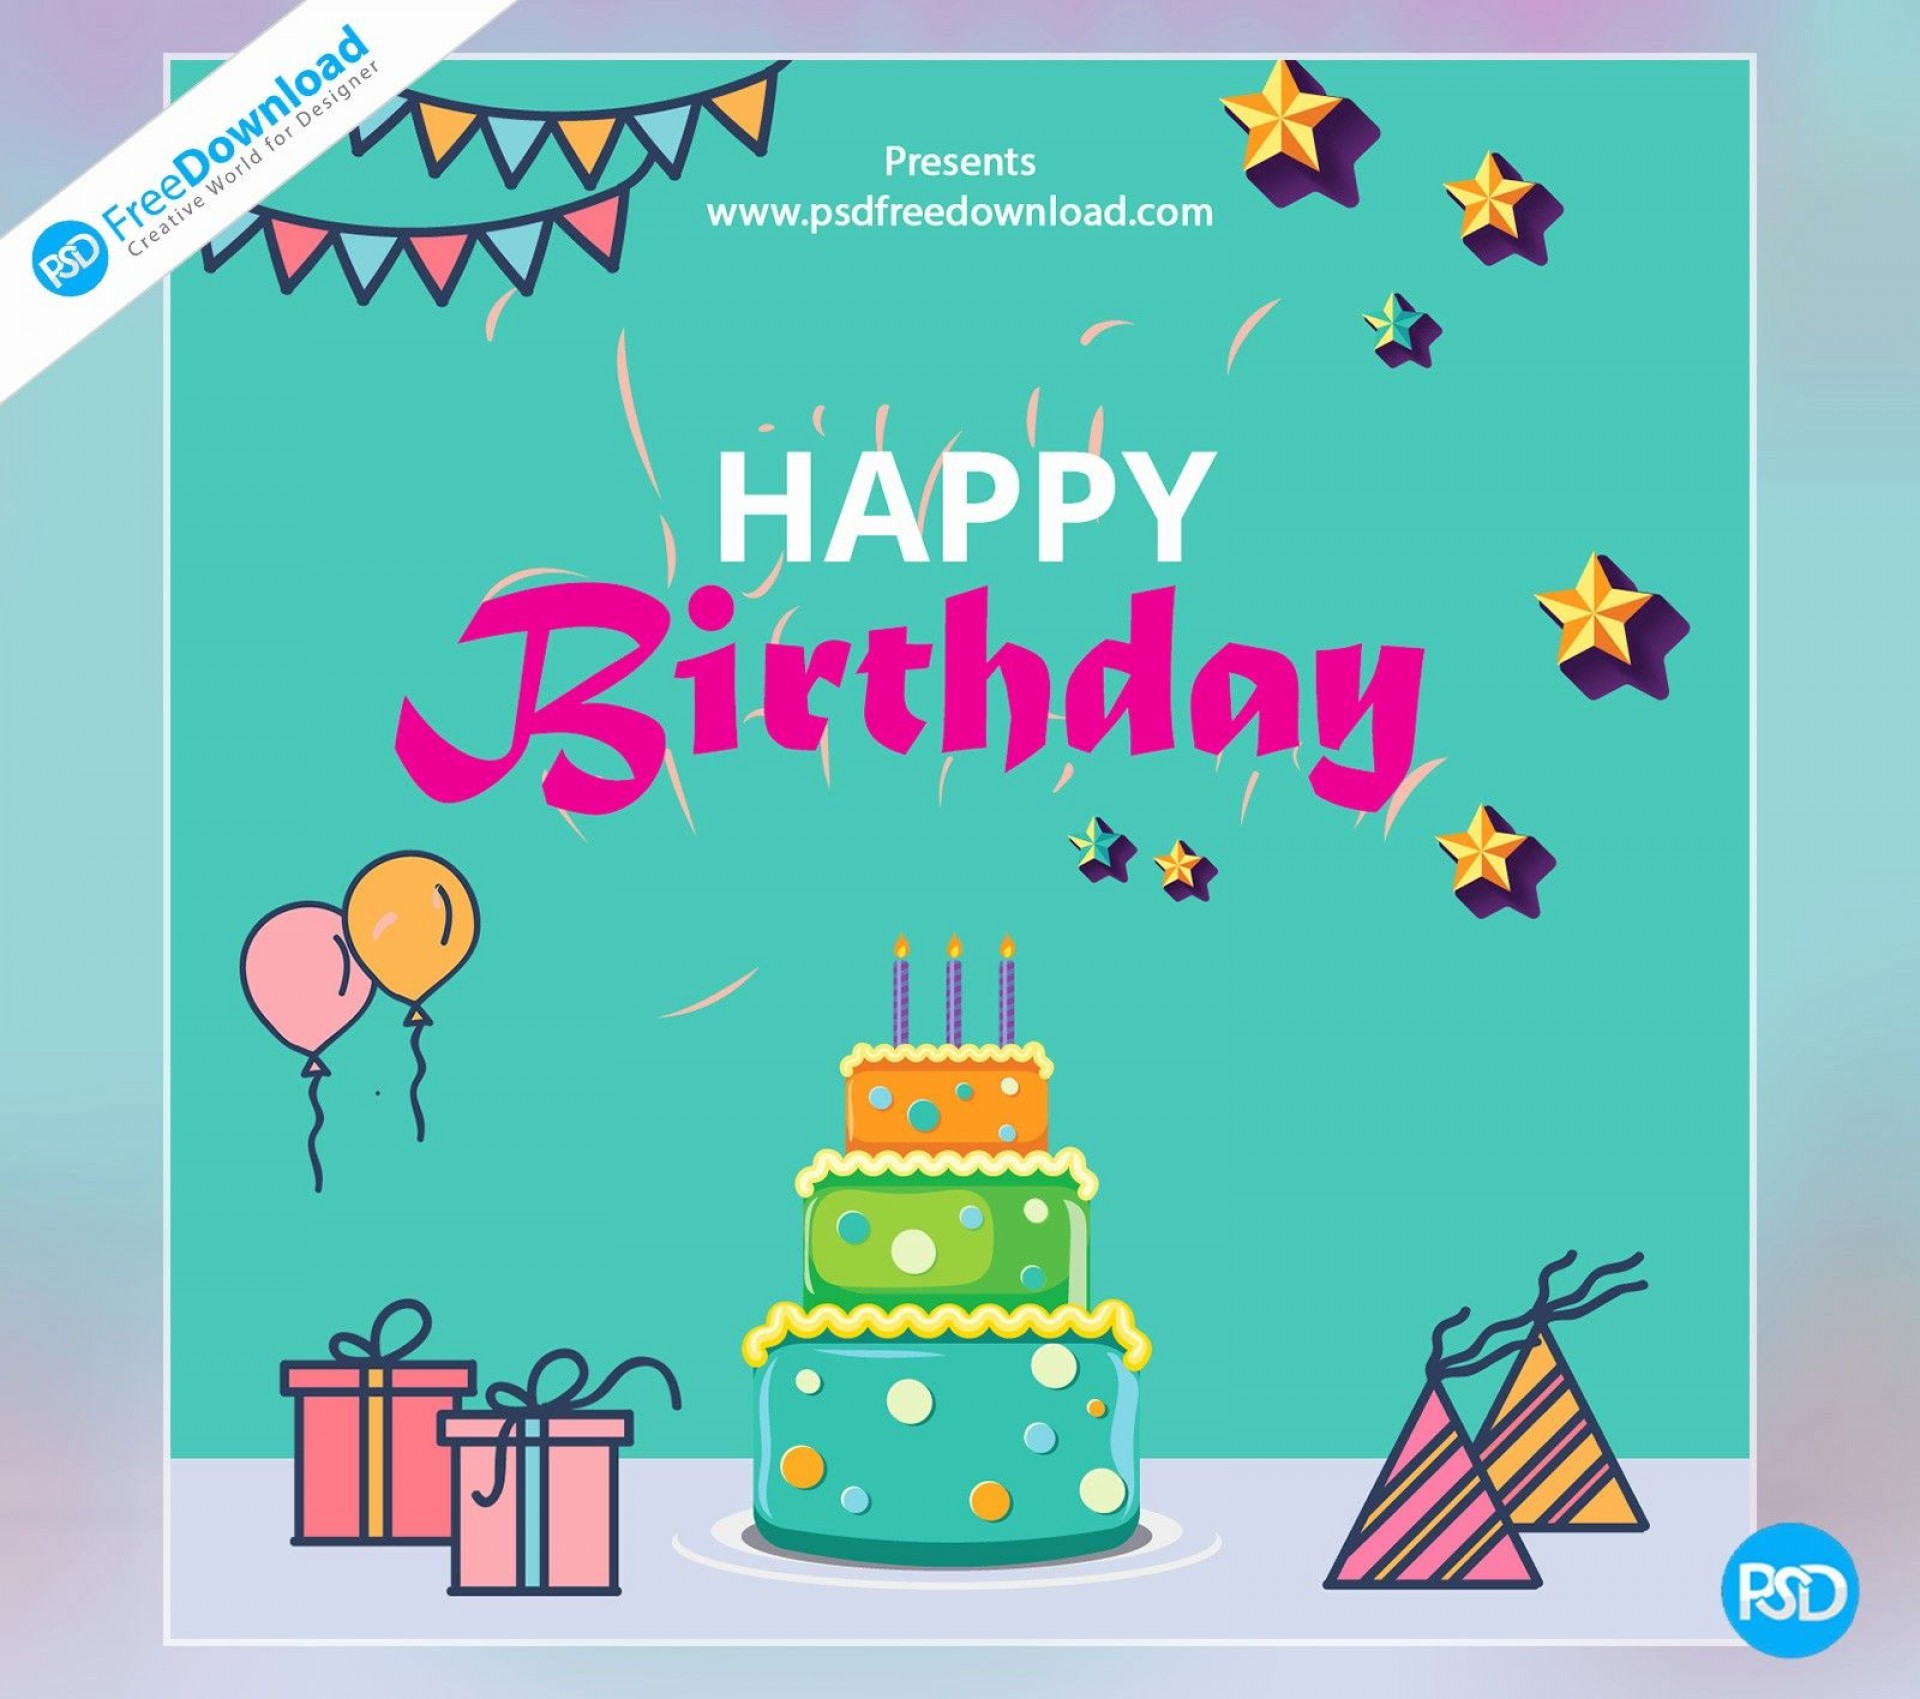 005 Marvelou Birthday Card Template Photoshop Highest Quality  Greeting Format 4x6 Free1920